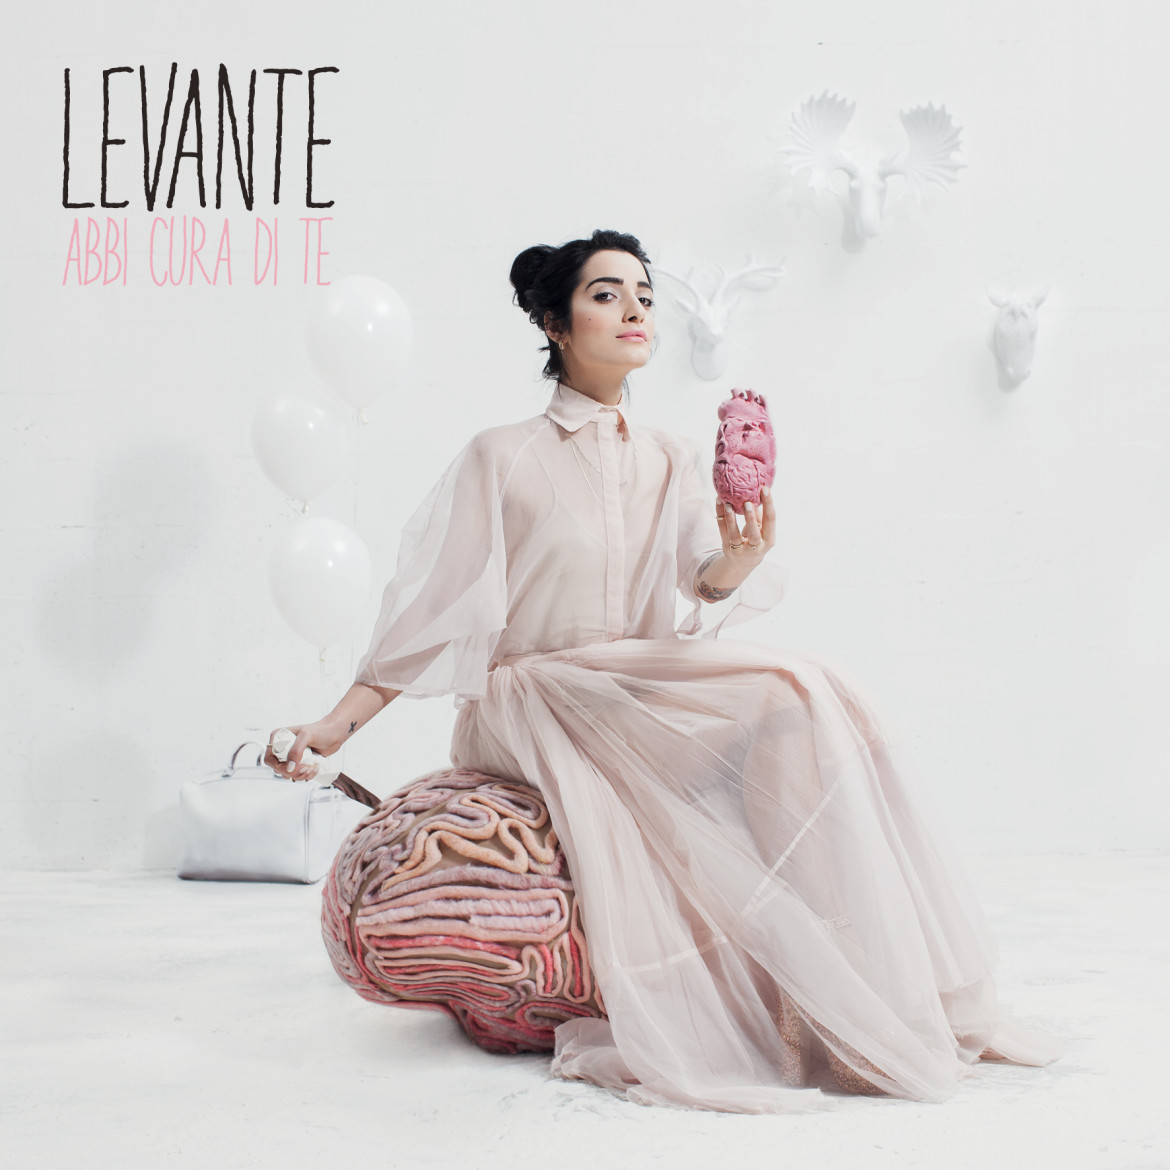 Levante_album_cover_web-1170x1170